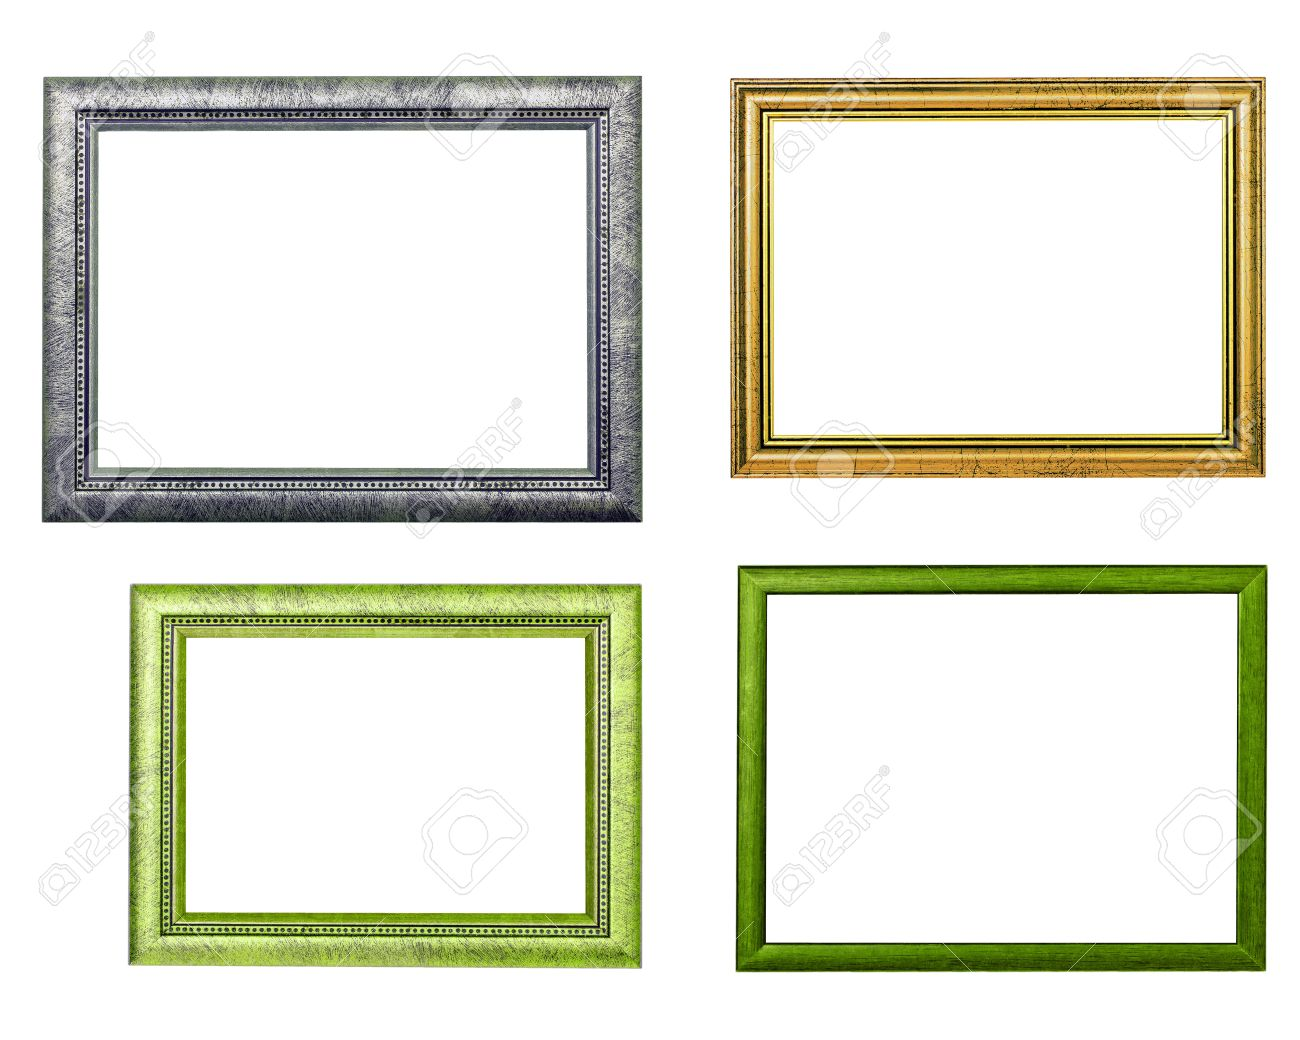 Four Frames On White Background Stock Photo, Picture And Royalty ...